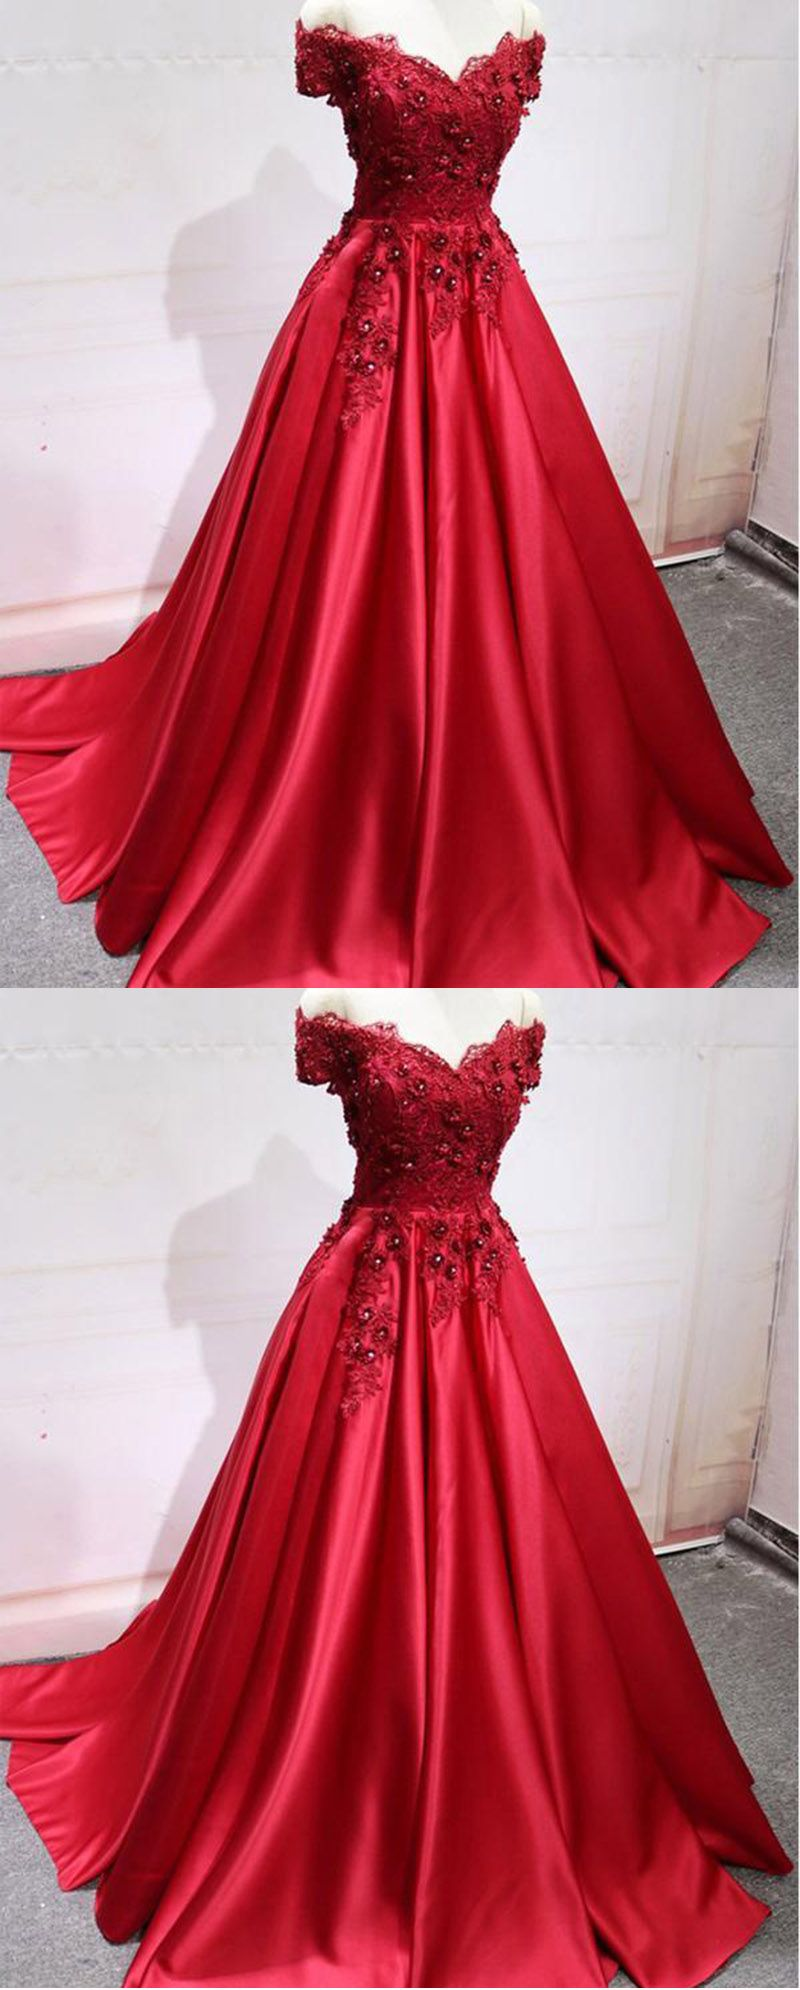 80f516bb1 Red Wedding Dress Ball Gown Reception Women Formal Evening Party ...